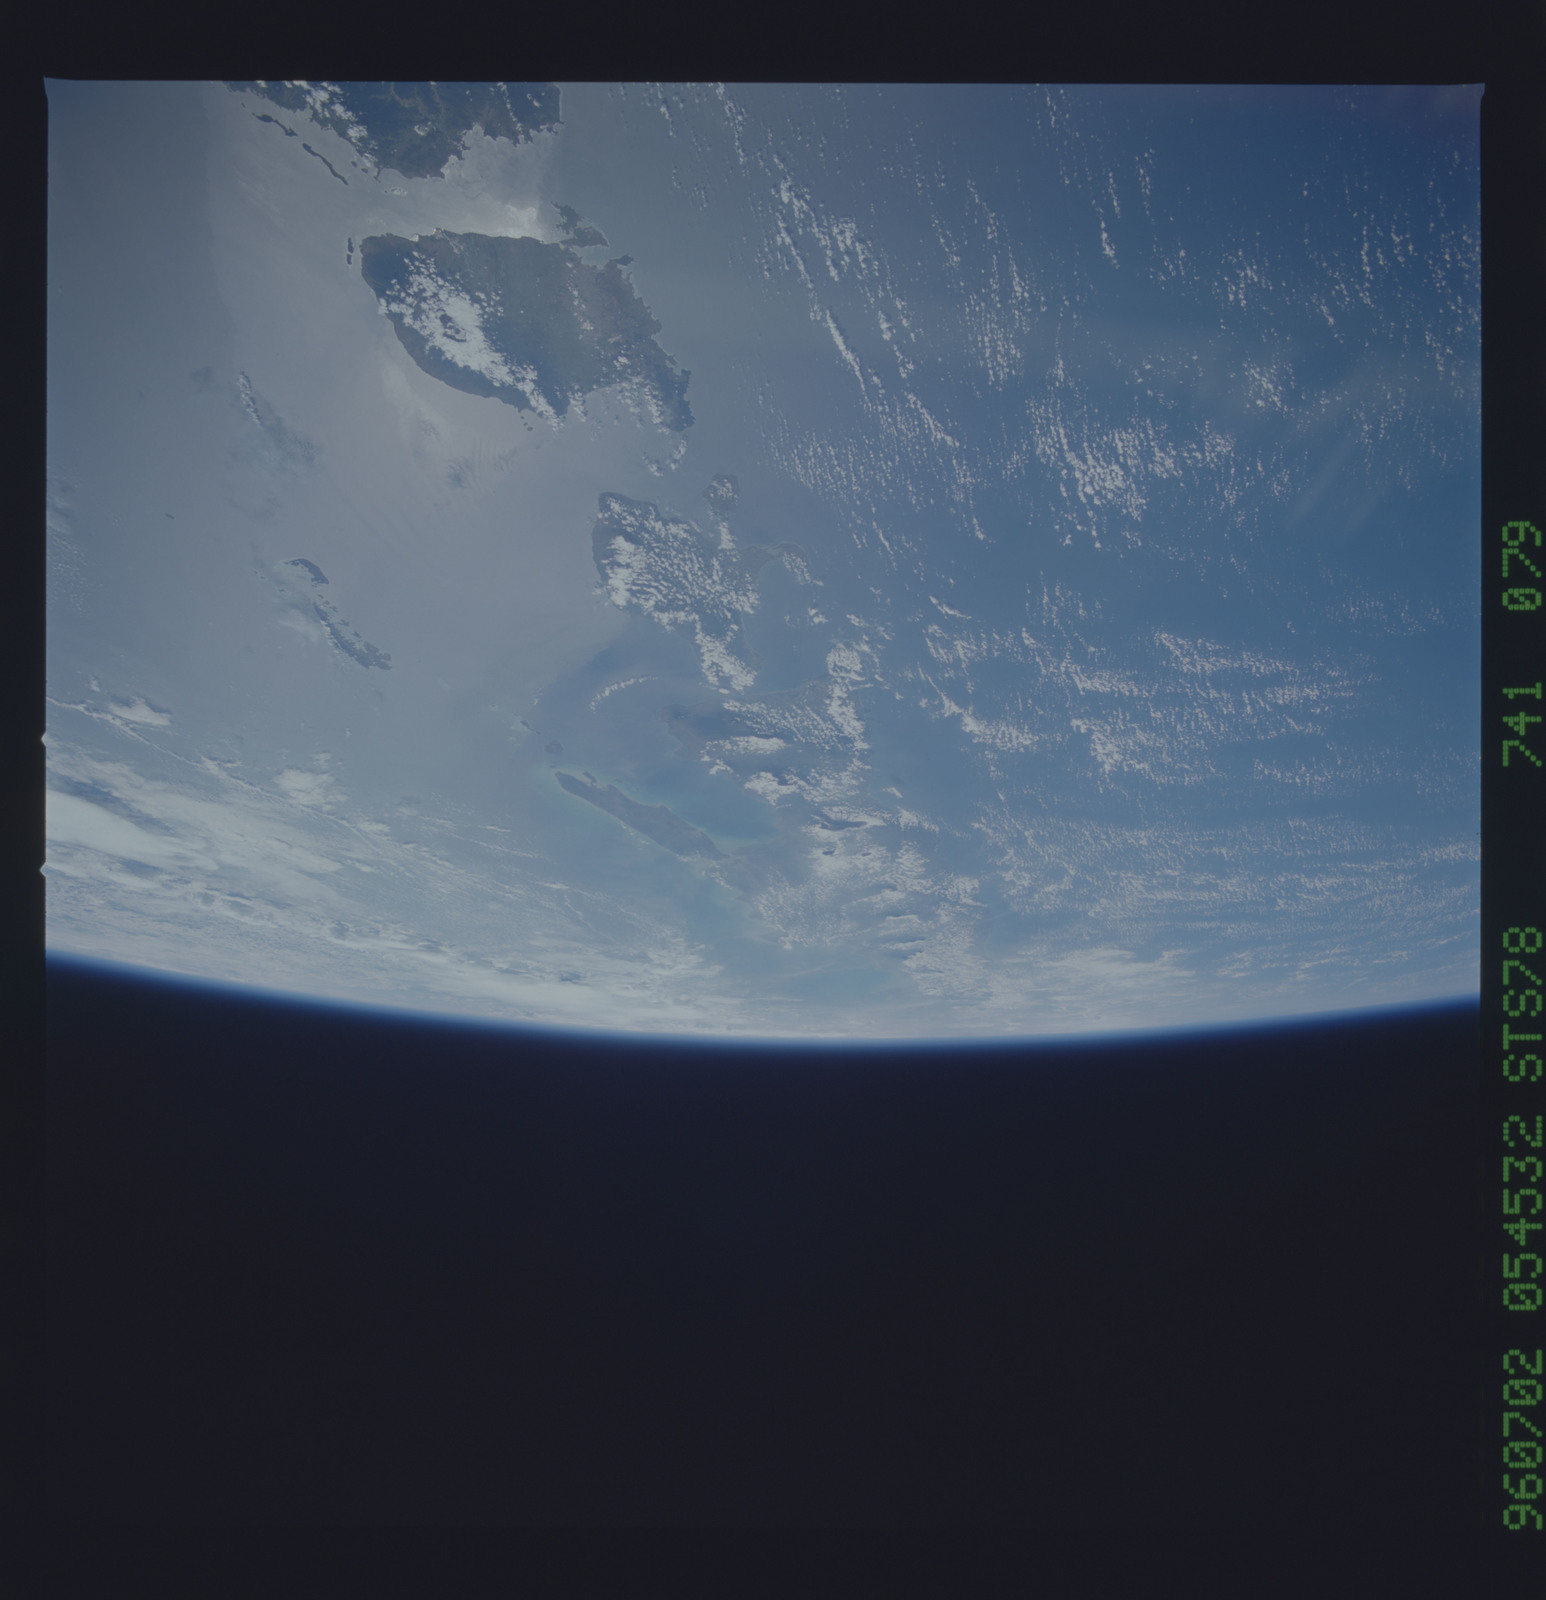 STS078-741-079 - STS-078 - Earth observations taken from Space Shuttle Columbia during STS-78 mission